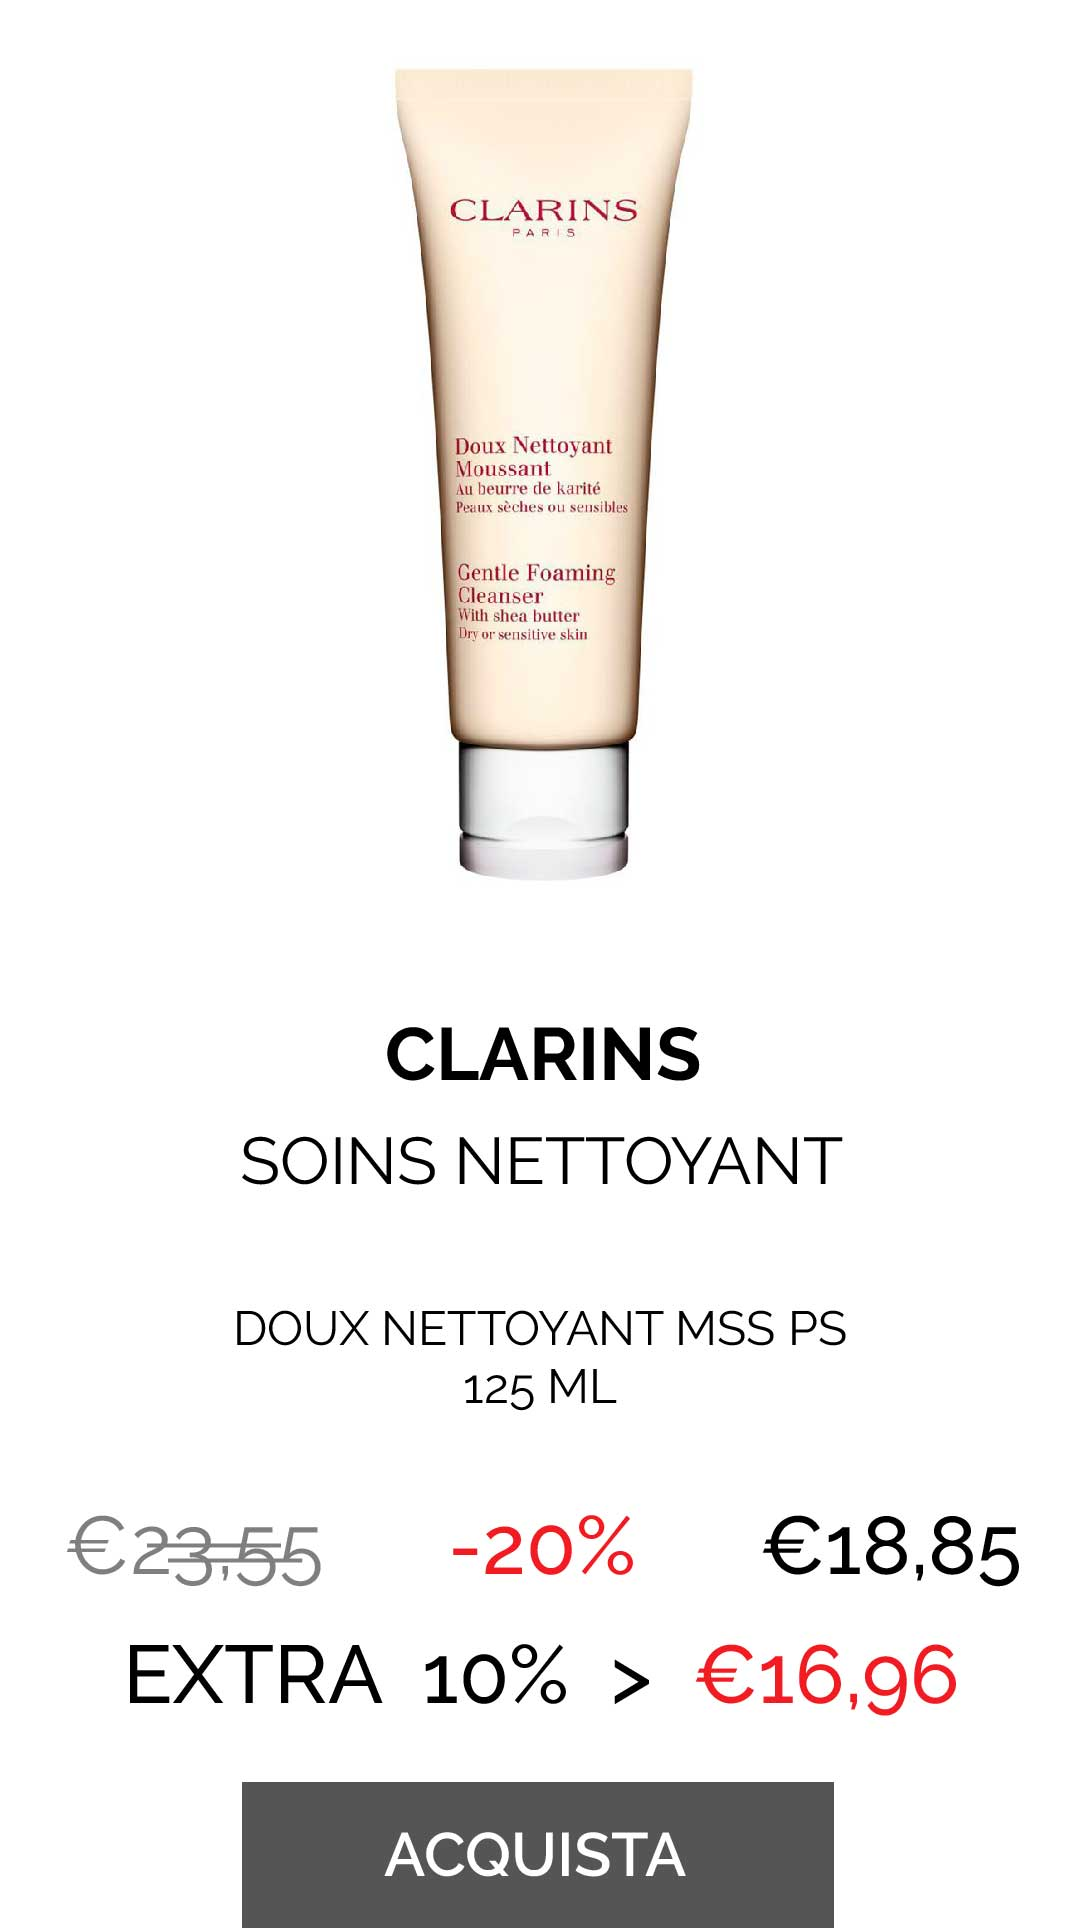 CLARINS - DOUX NETTOYANT MSS PS 125 ML